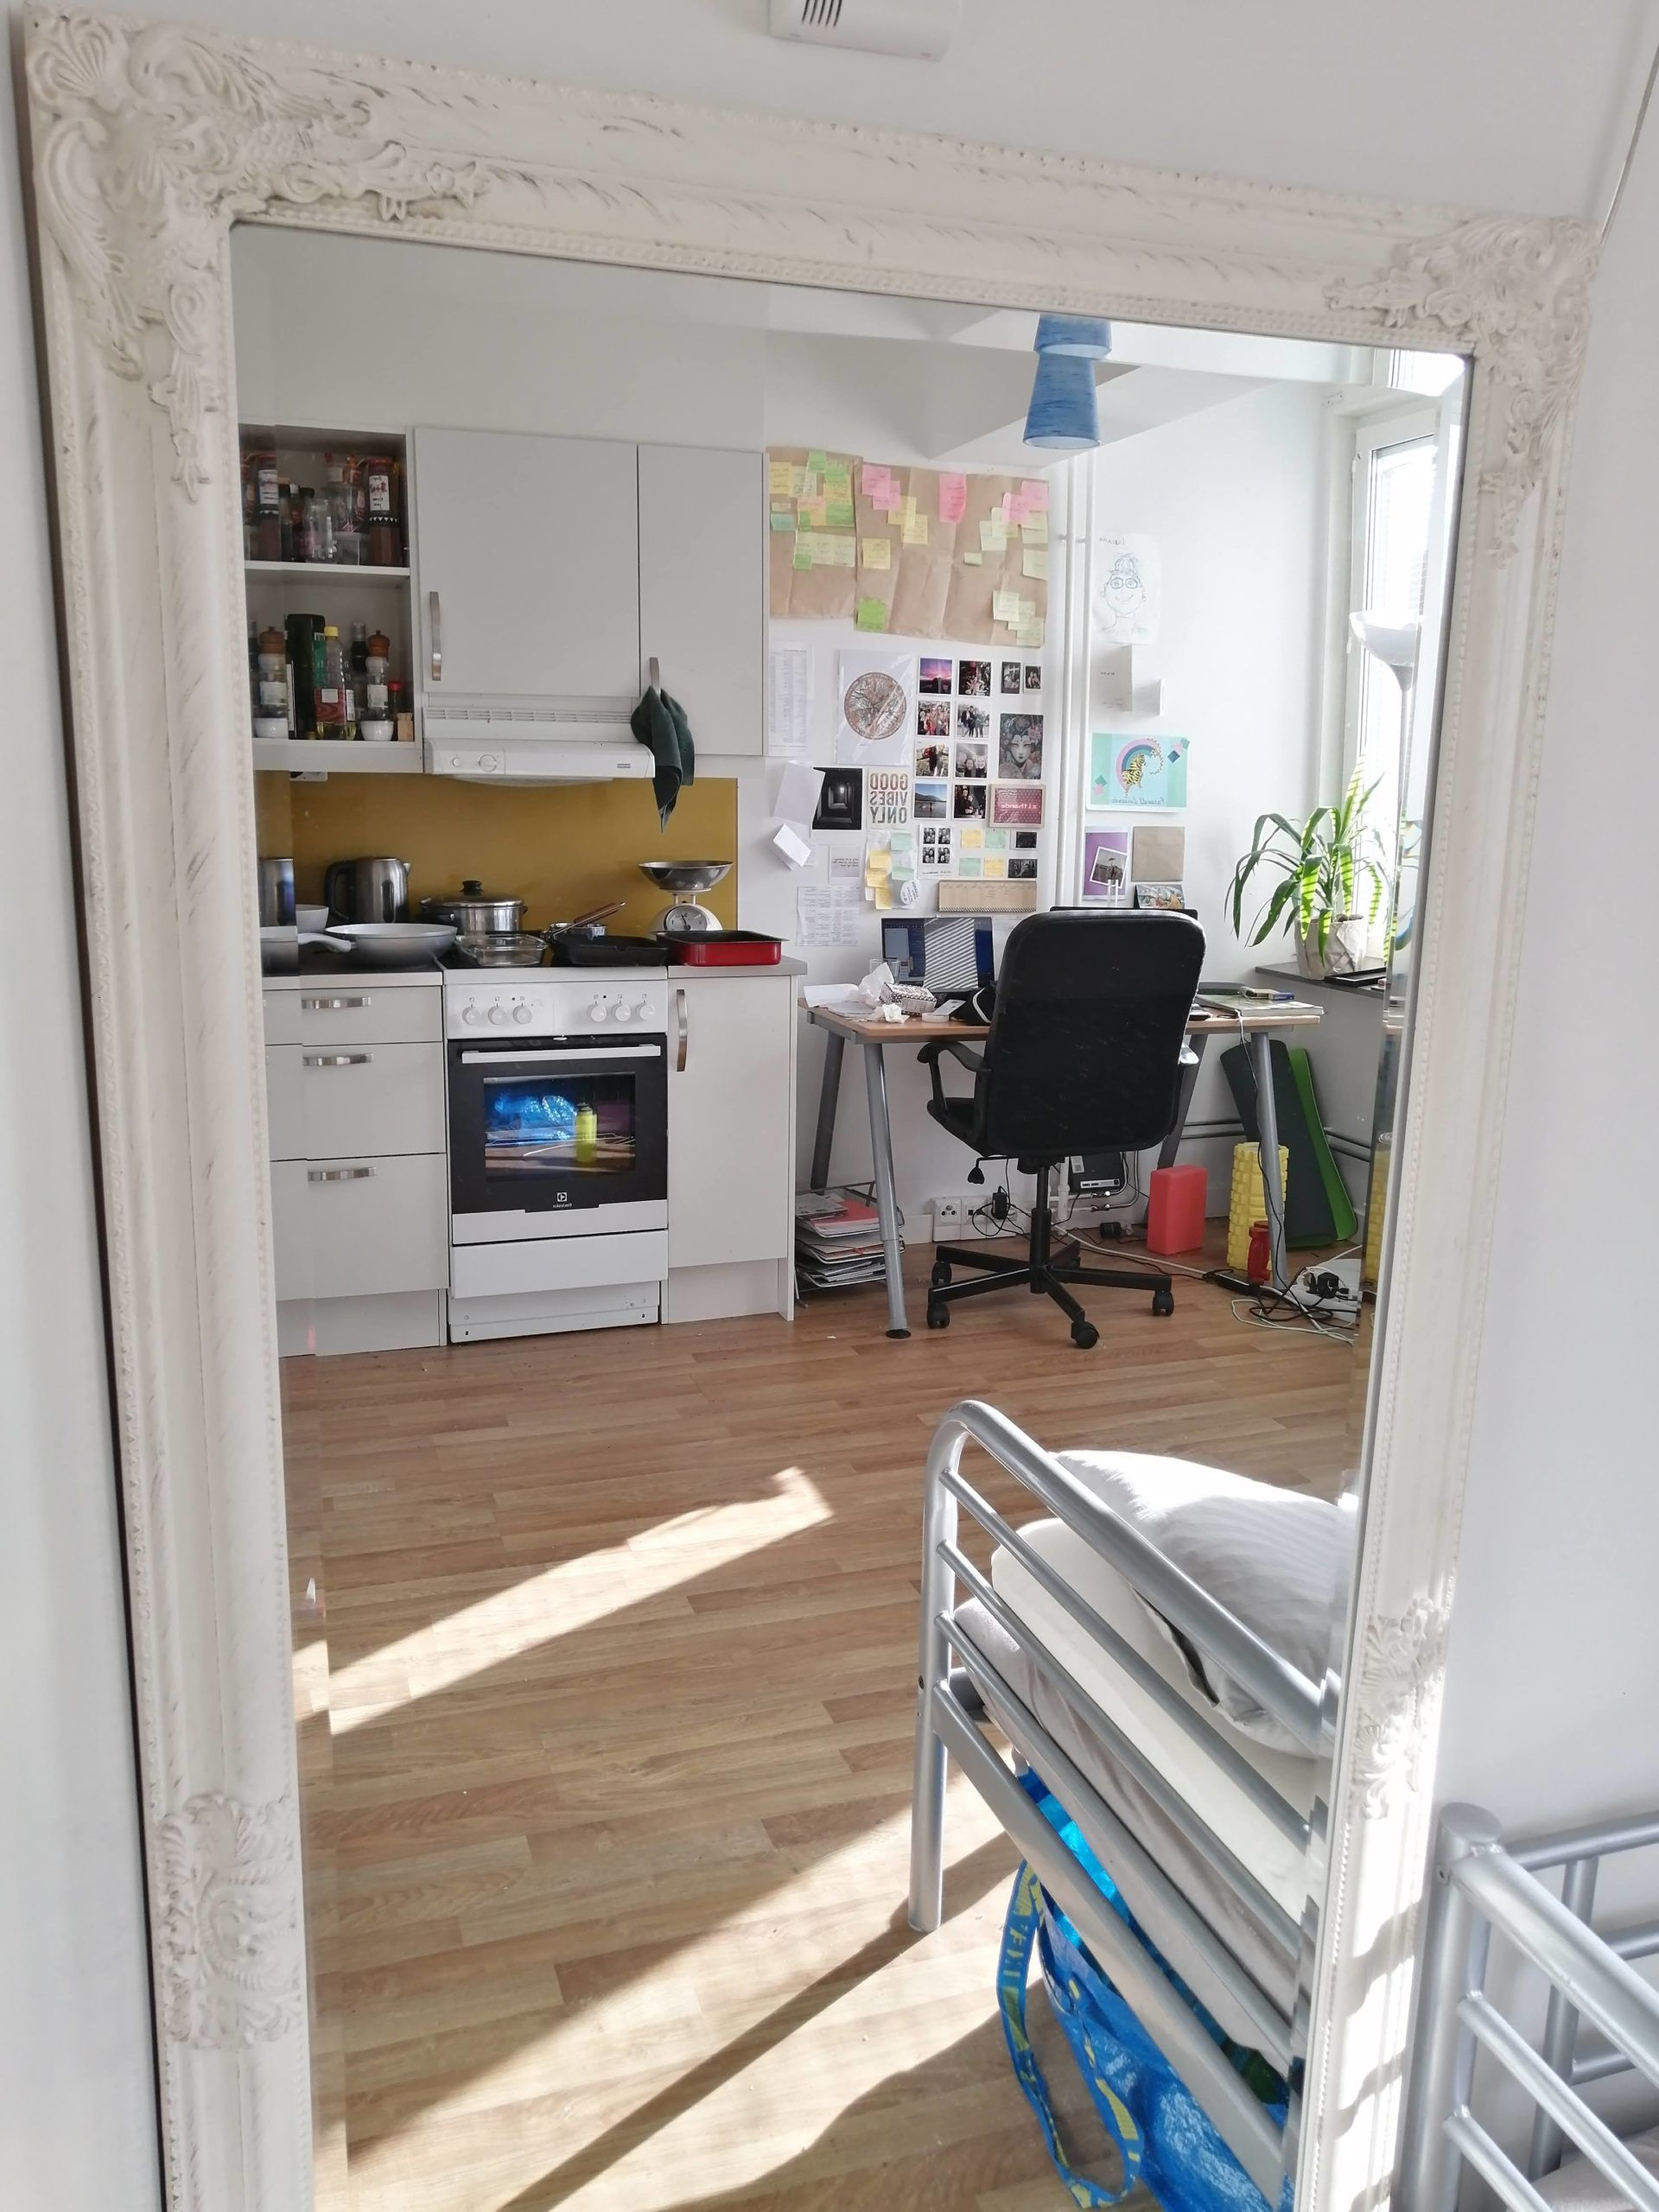 A mirror reflecting a room in an apartment